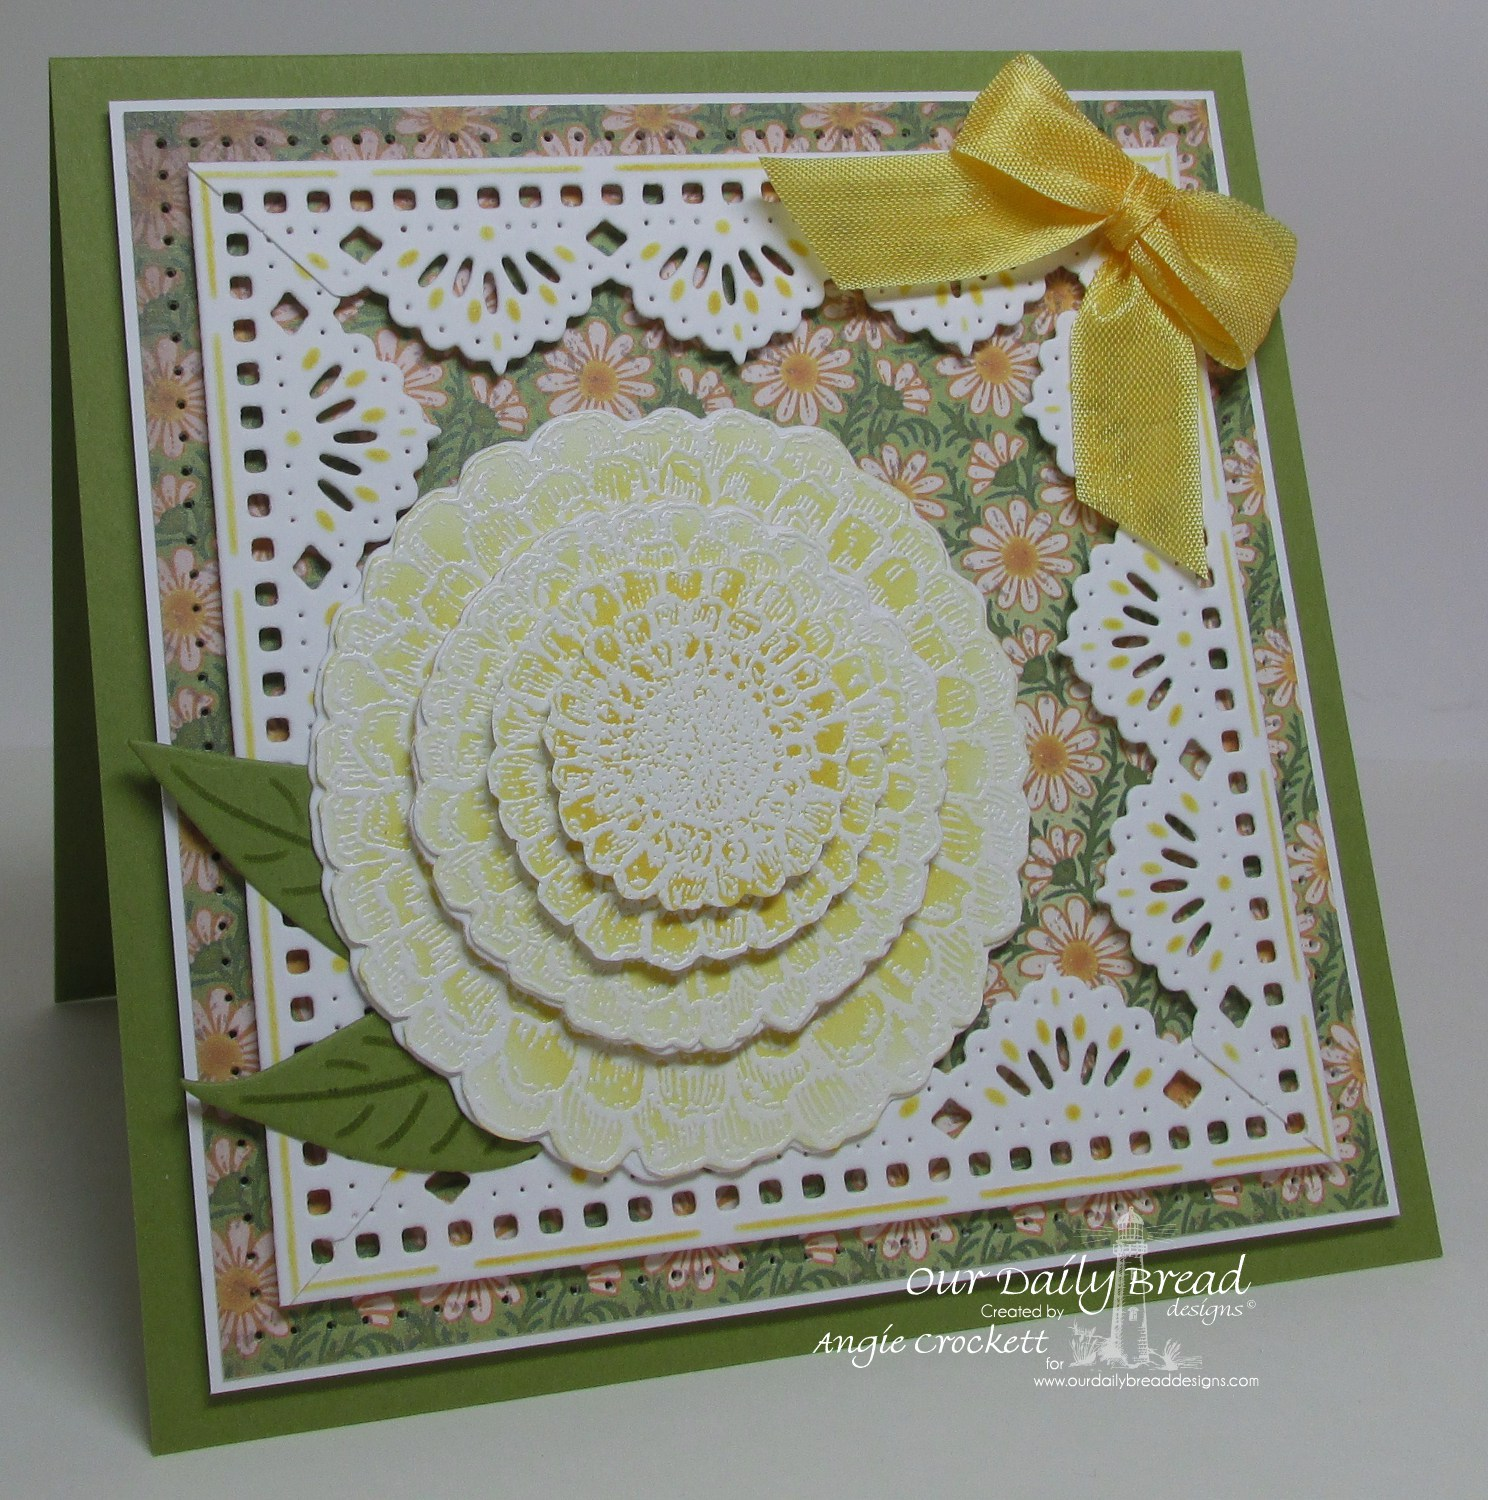 Stamps - Our Daily Bread Designs Zinnia, ODBD Blooming Garden Paper Collection, ODBD Custom Zinnia and Leaves Die, ODBD Custom Beautiful Borders Dies